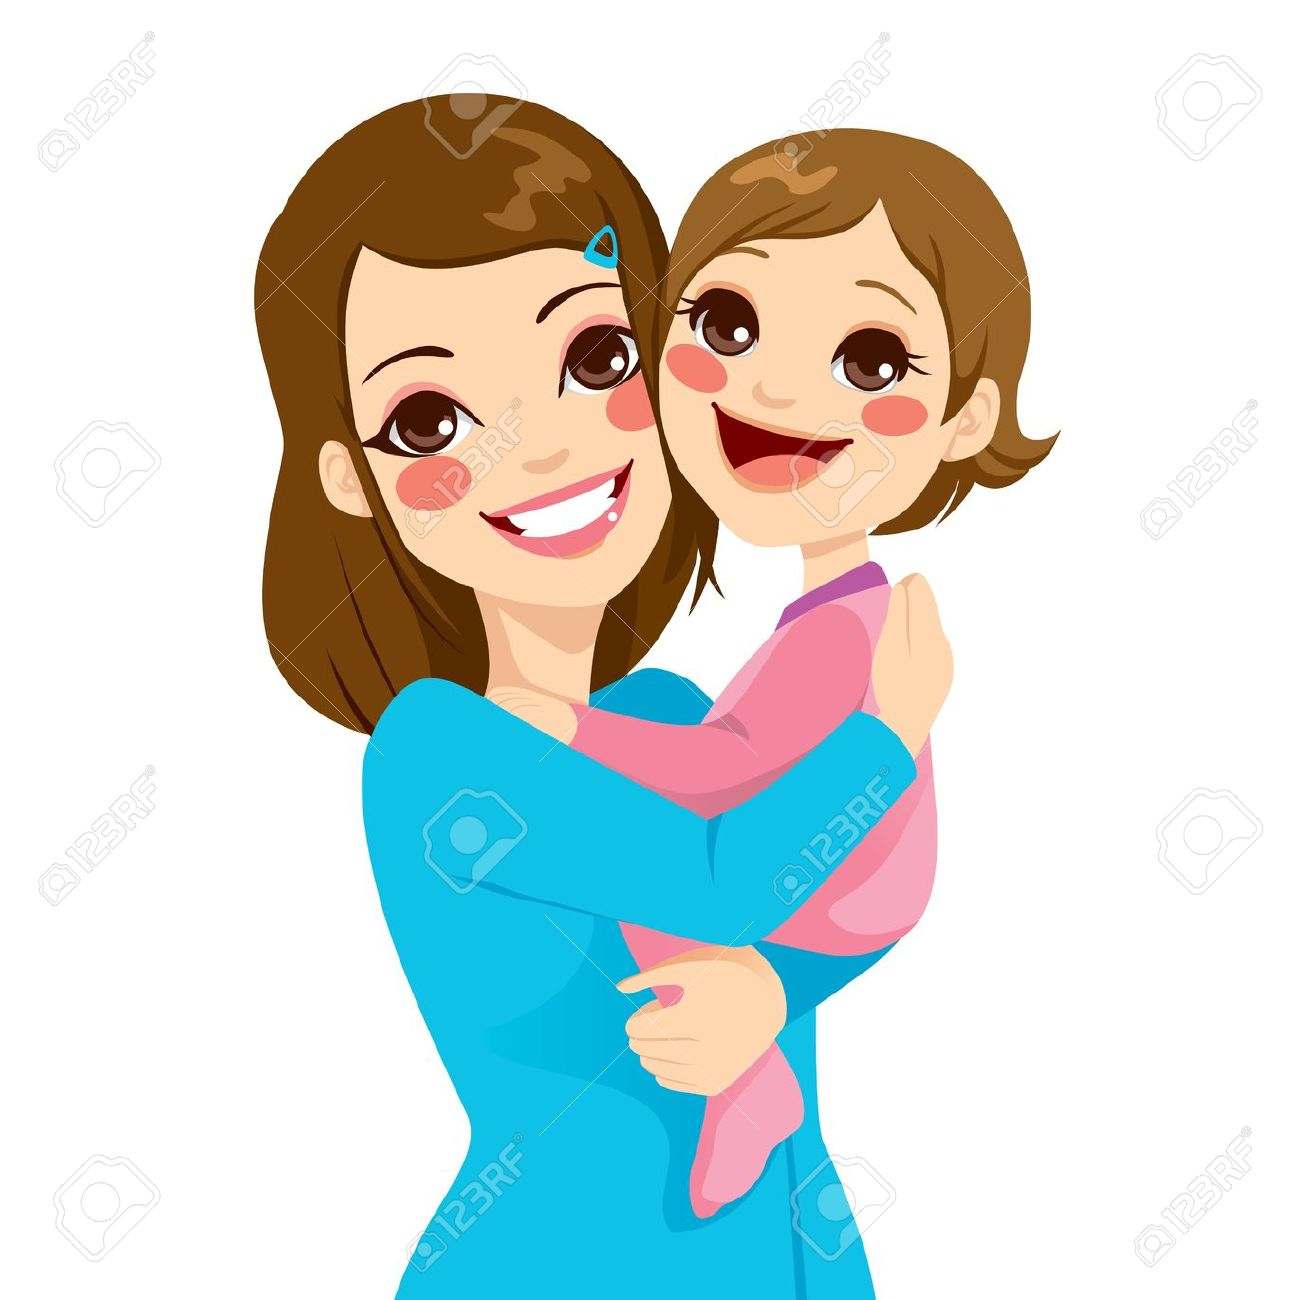 Mom Hugging Child Clipart.